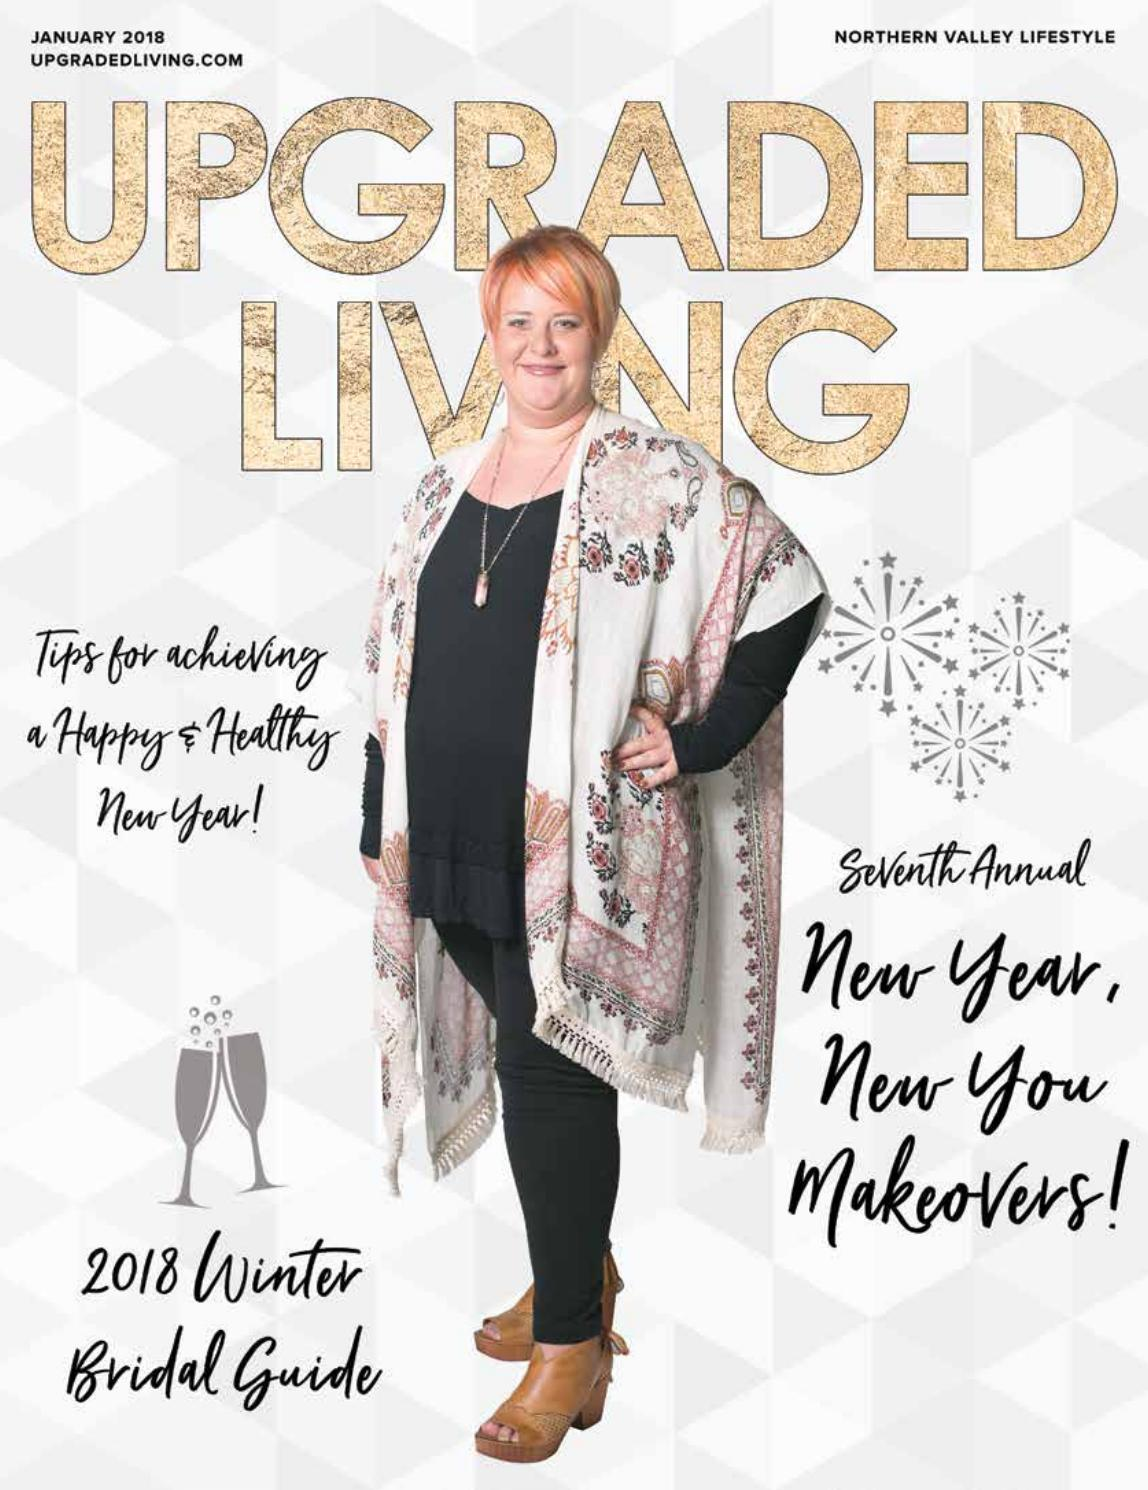 01b1694beab387 Upgraded Living January 2018